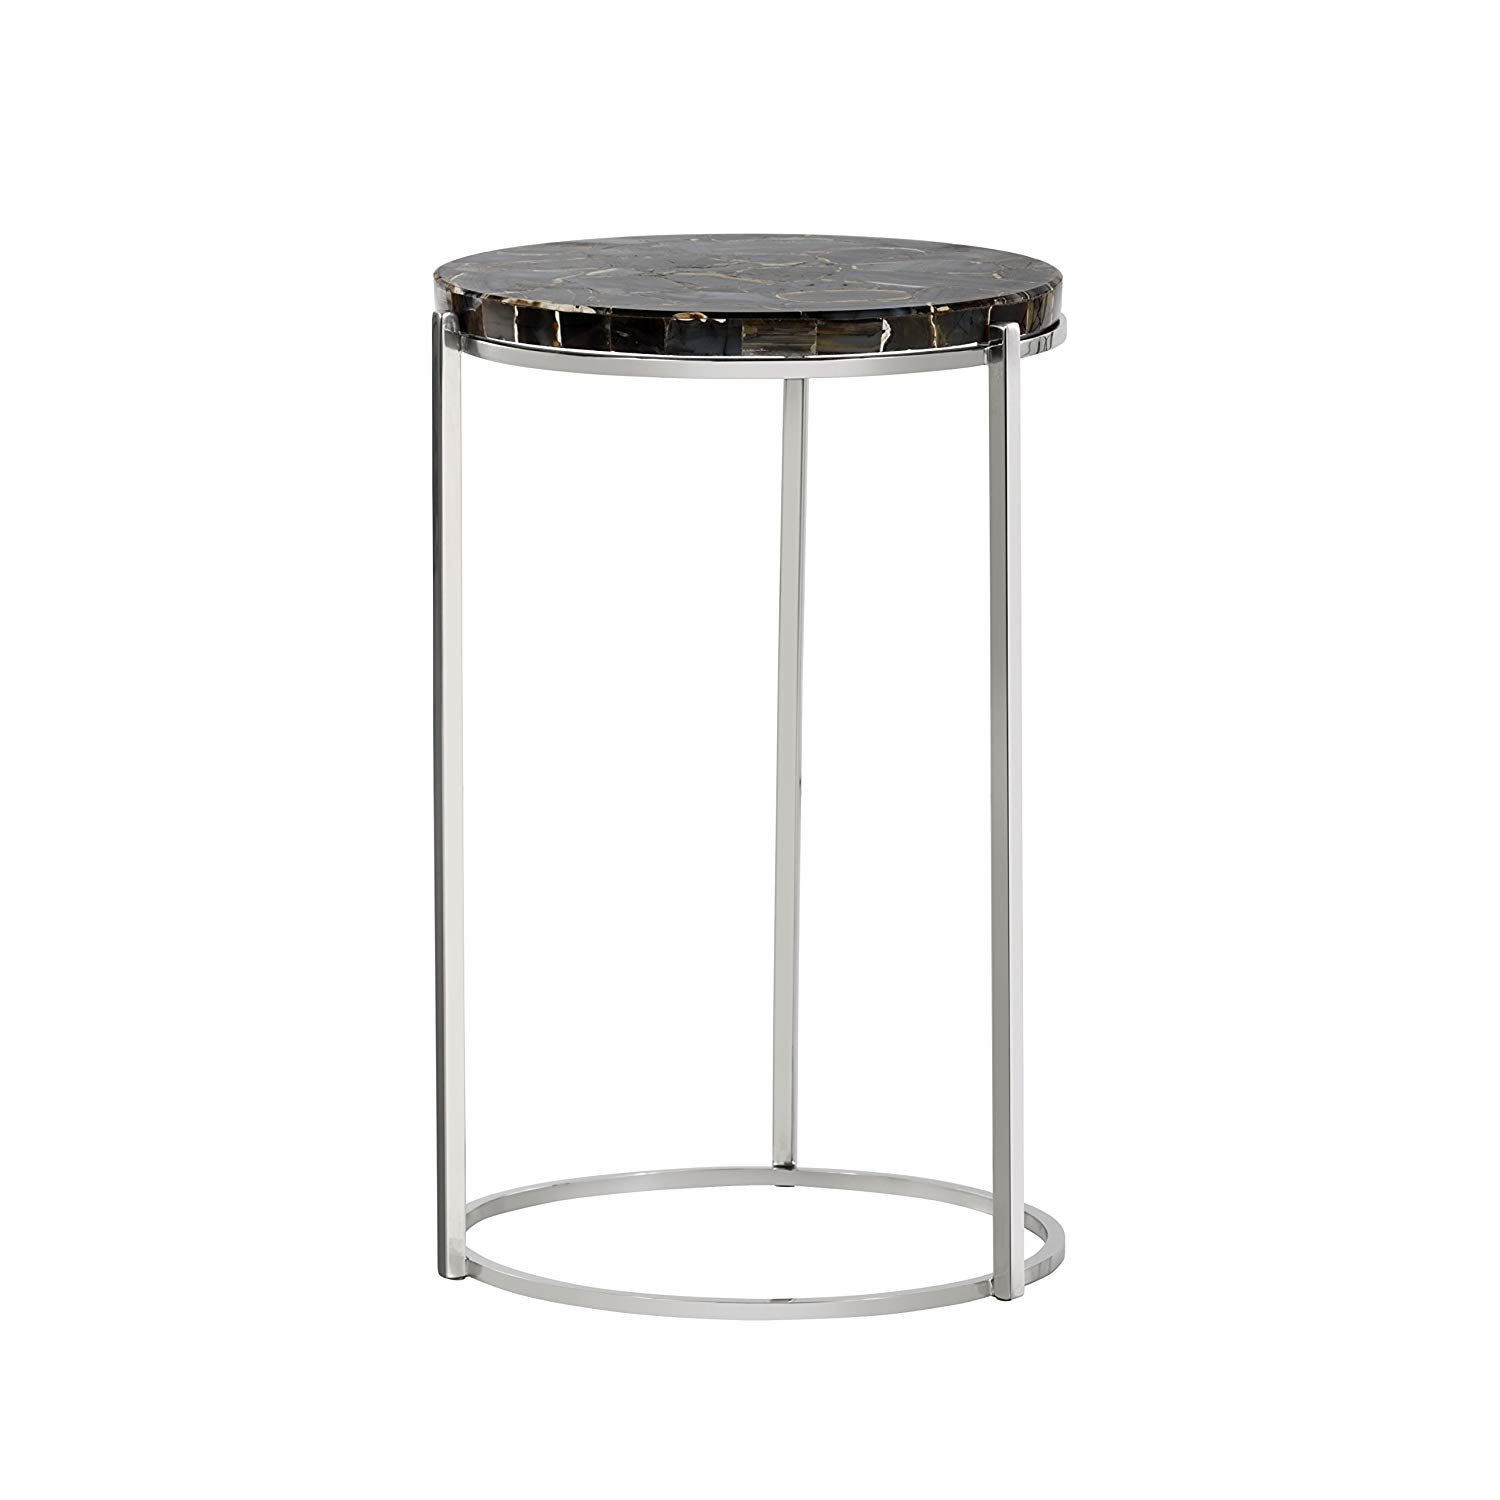 sunpan modern tillie end table black agate kitchen bgl glass accent dining plexiglass coffee top jacket hoodie round wood nesting tables lamp with usb port metal home decor cement